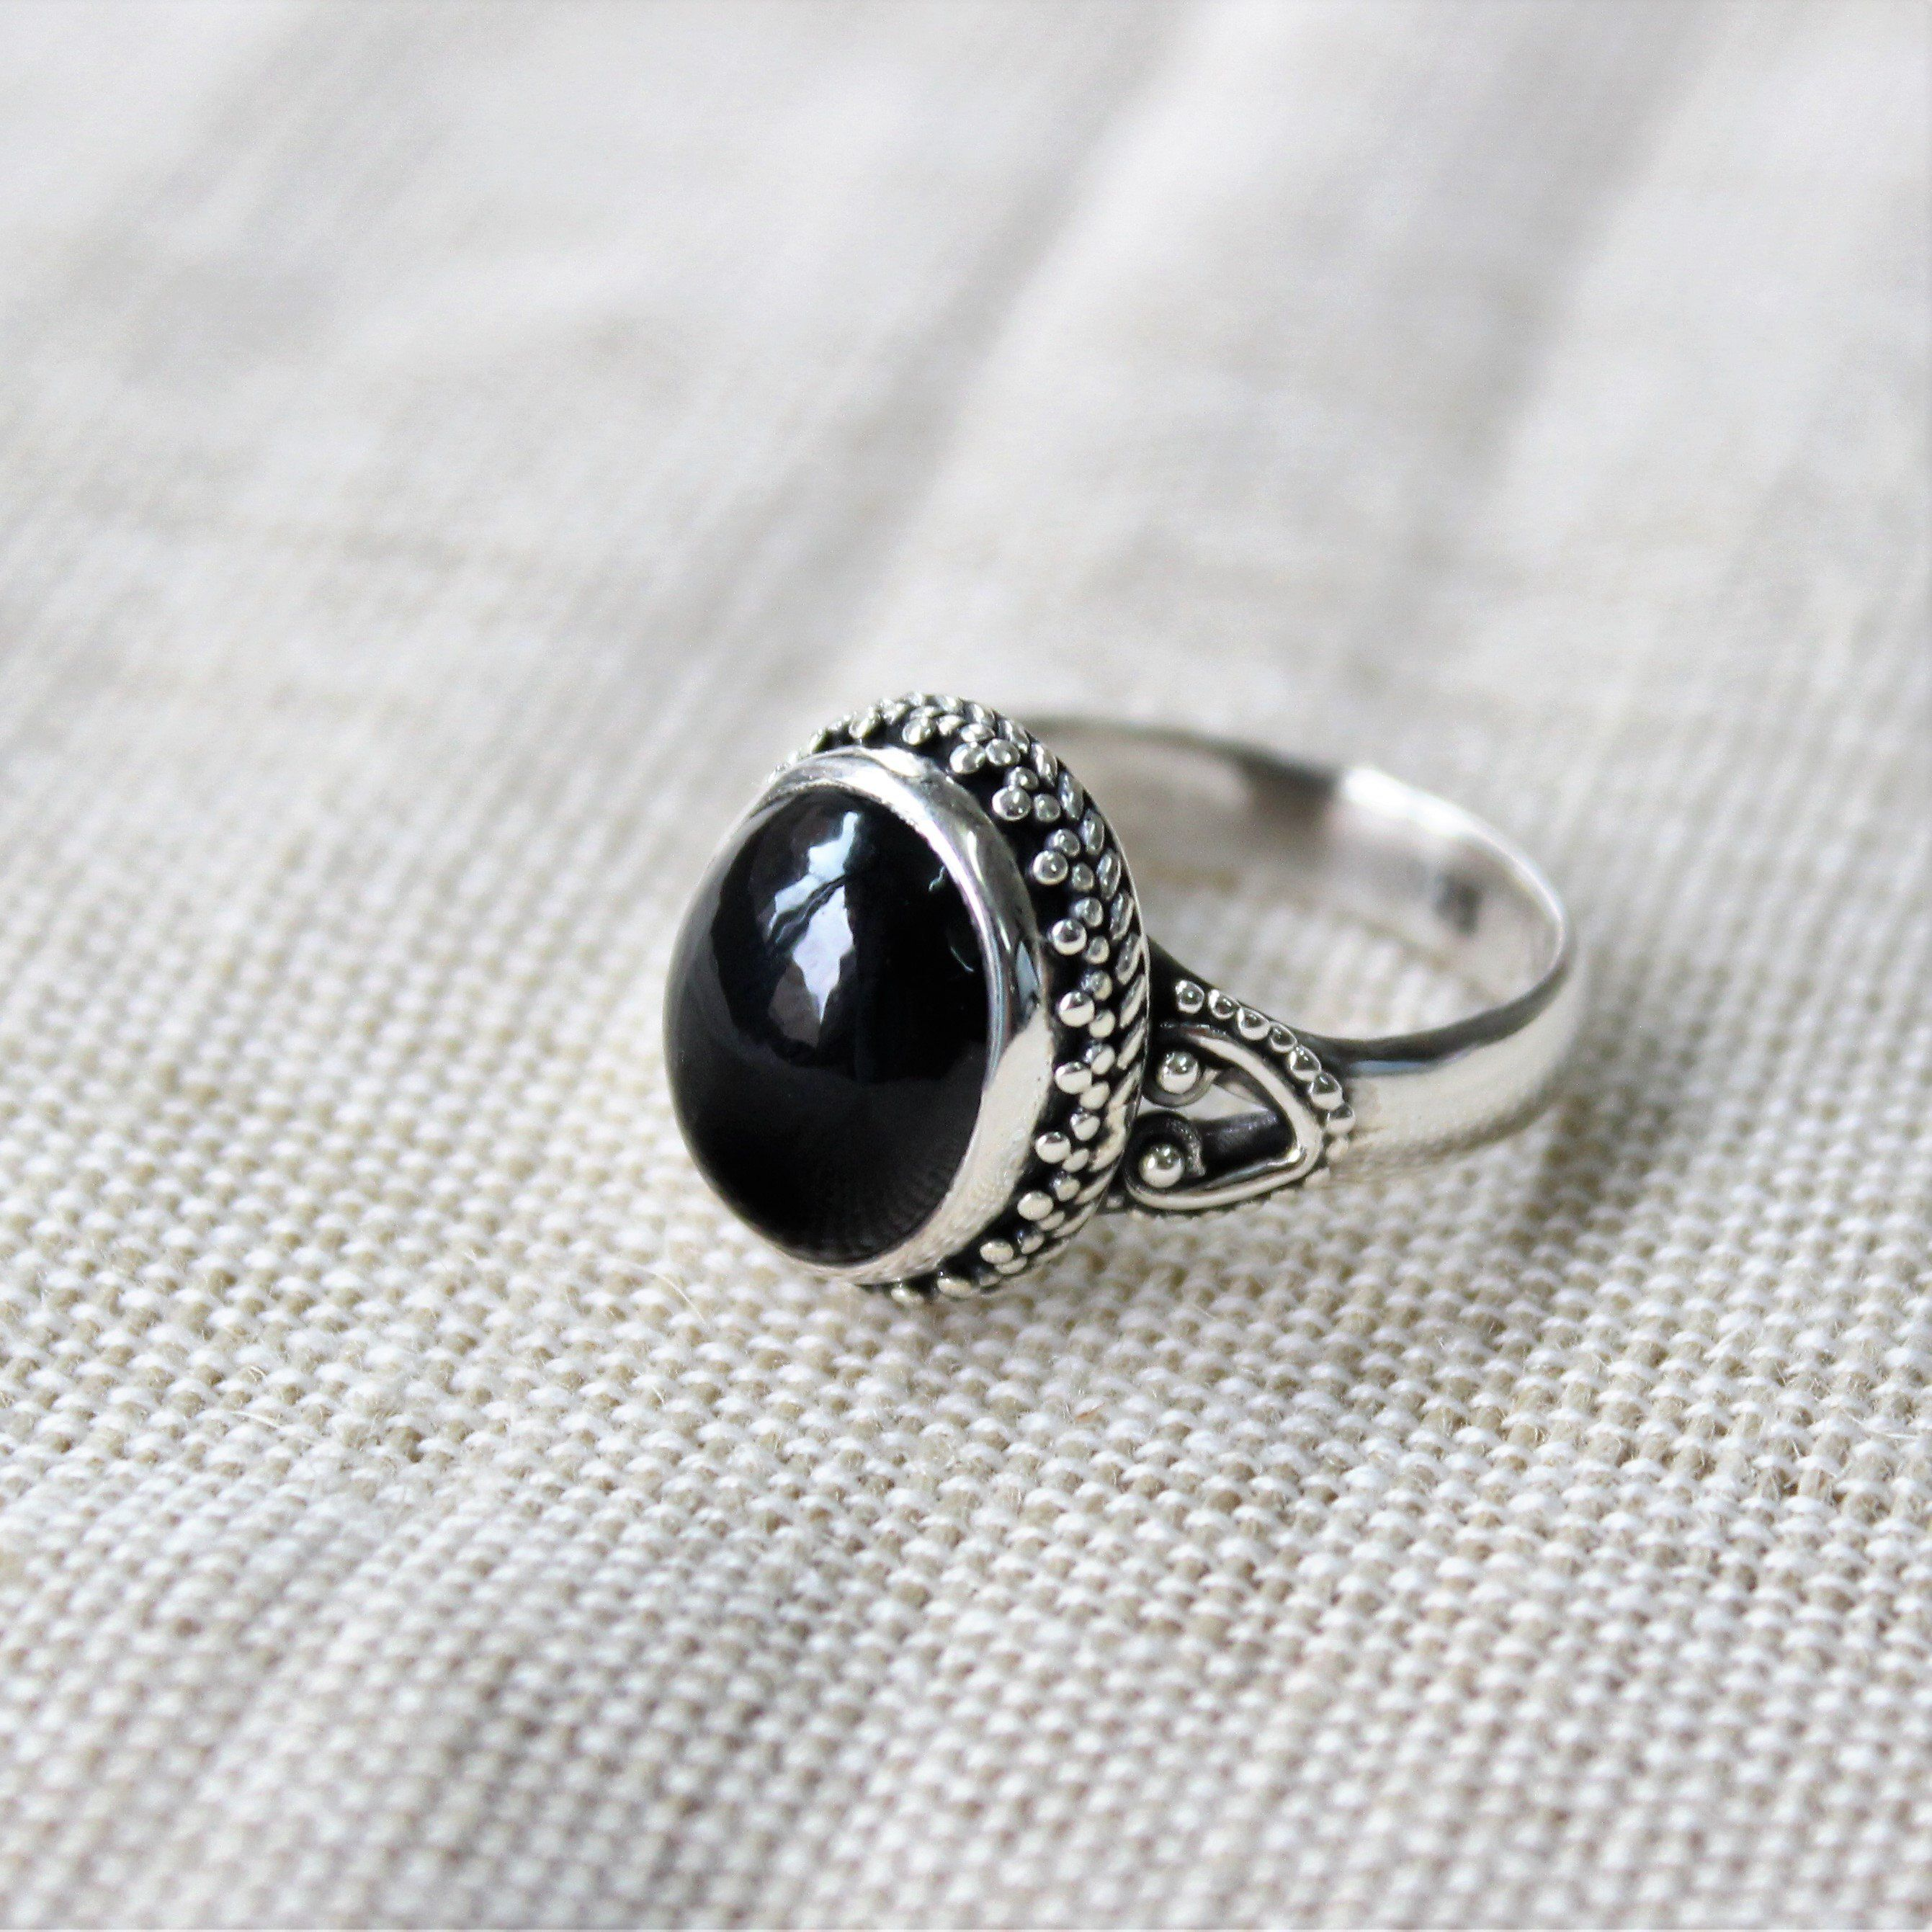 Handmade Jewelry Ethnic Wear Black Onyx Oxidized Sterling Silver Overlay Ring Size 5 US